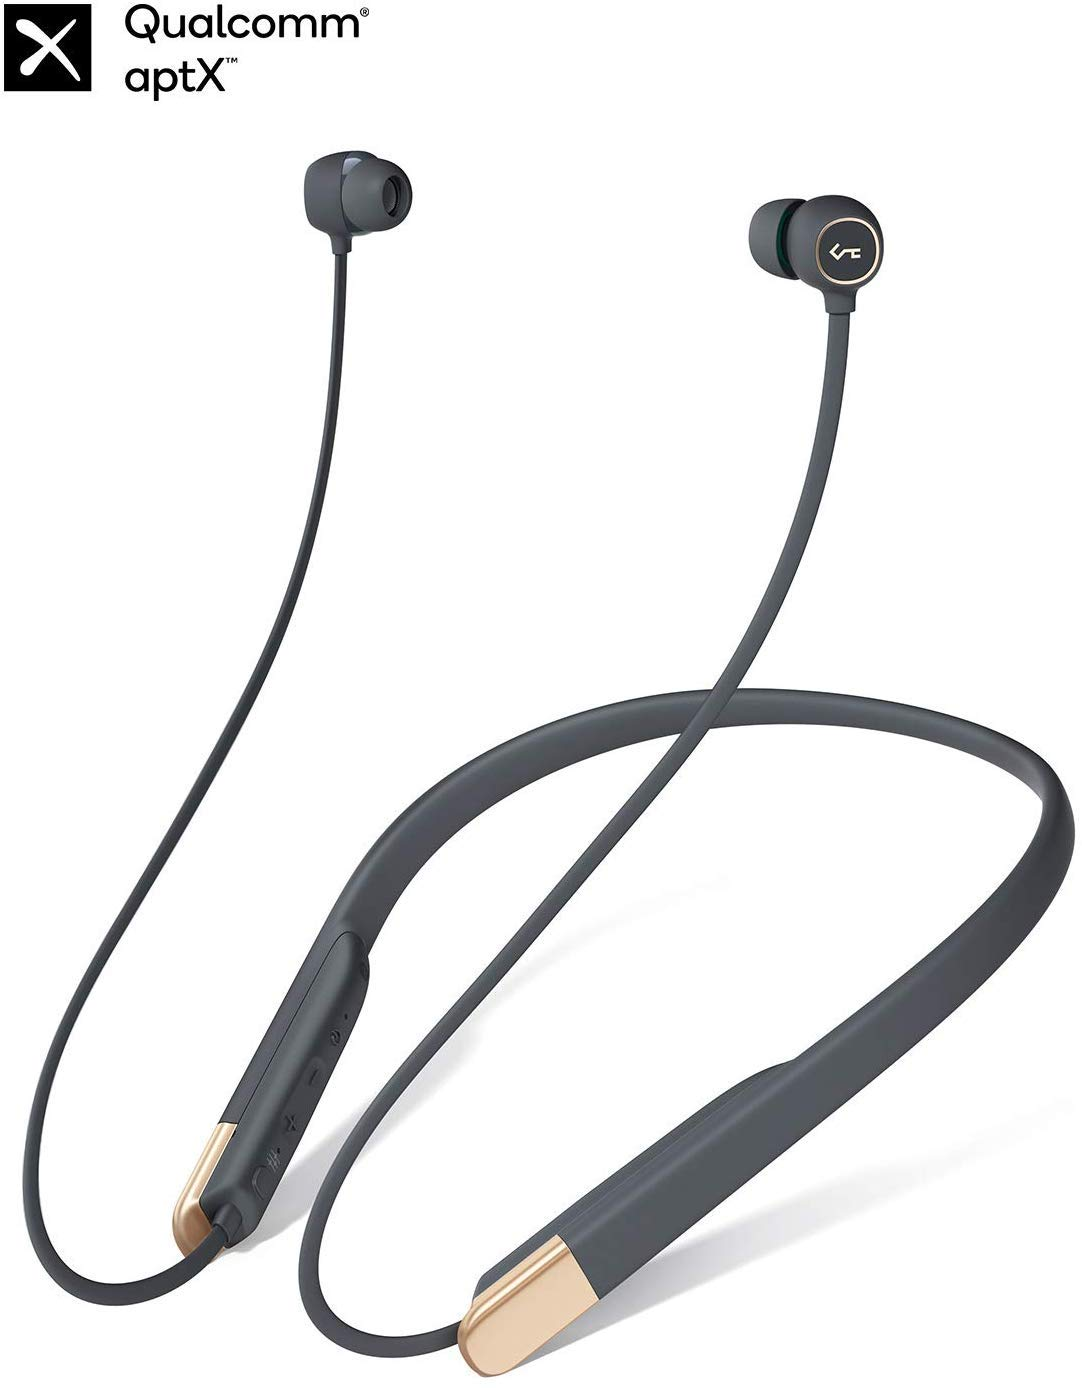 AUKEY Key Series Headphones